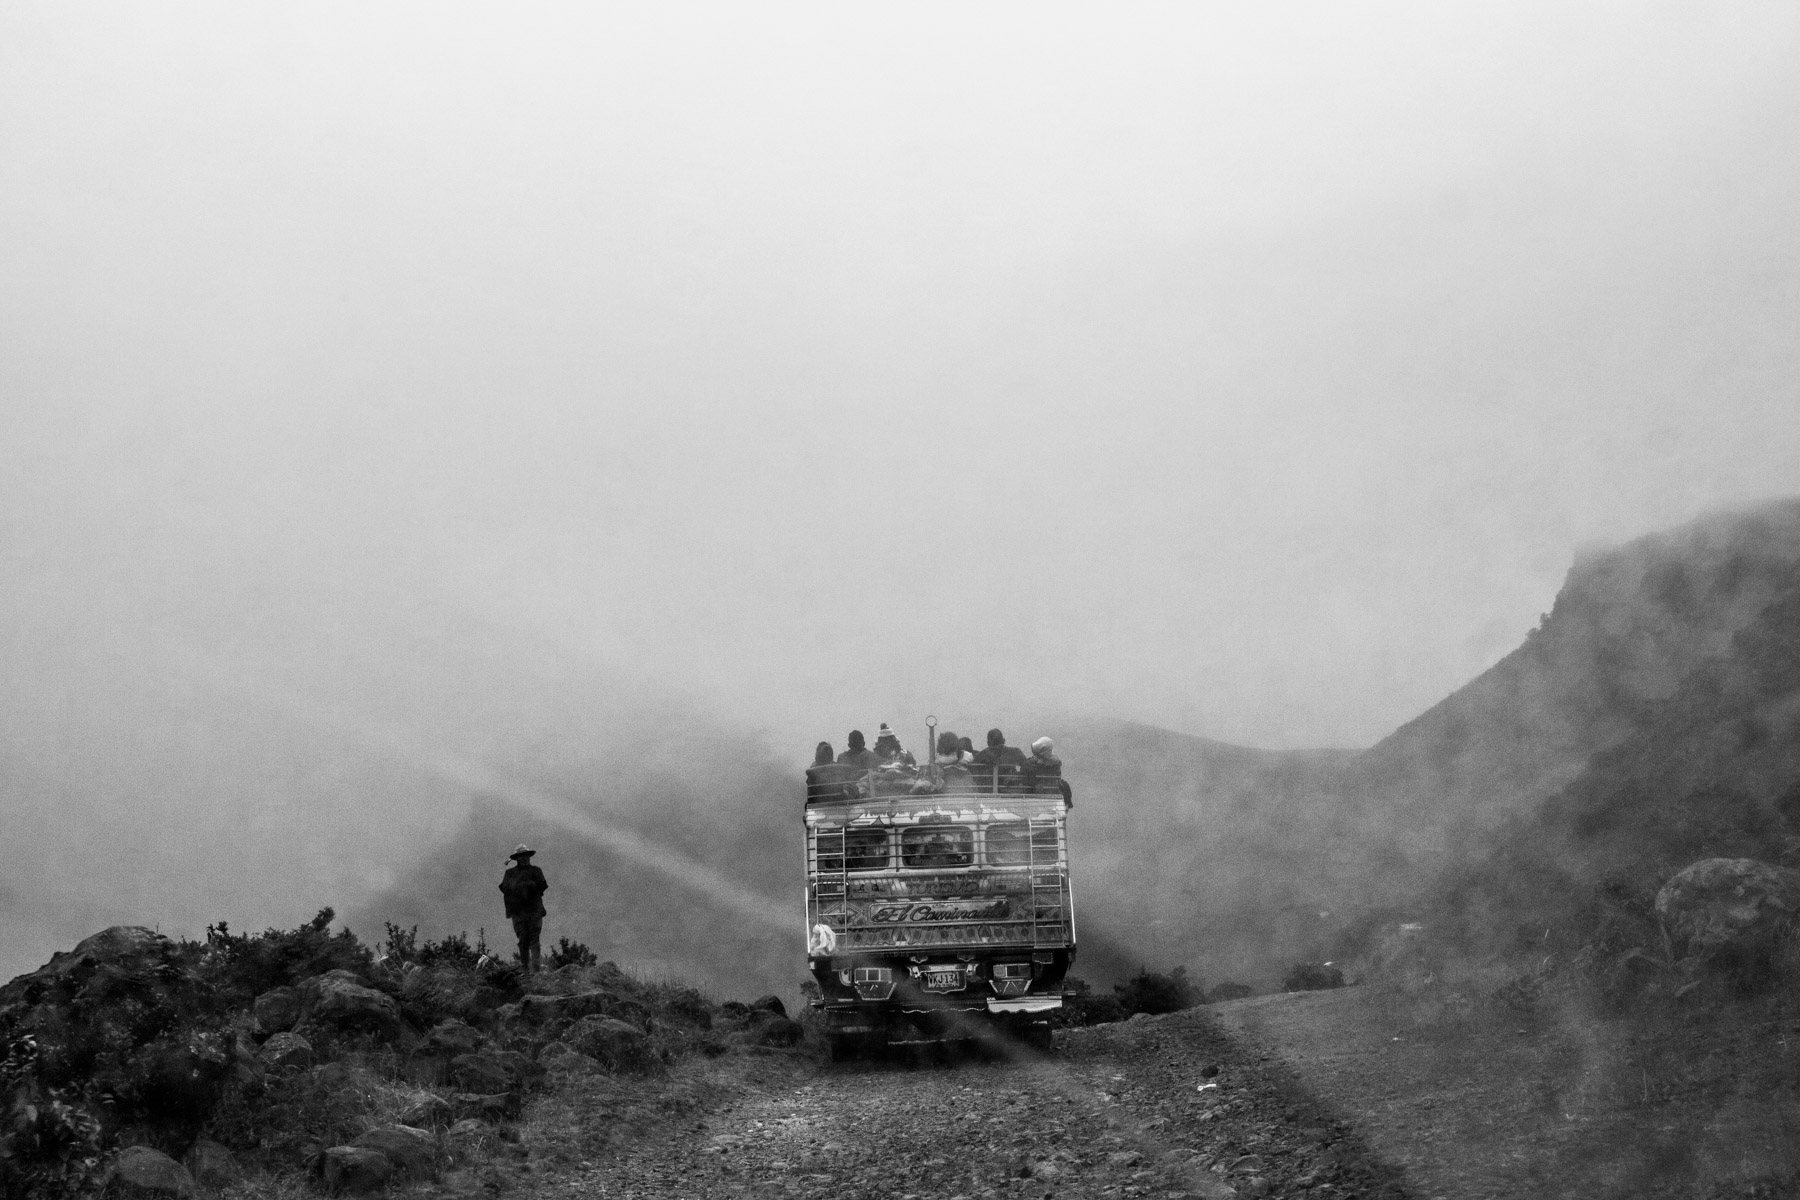 """Indigenous people from the Nasa reservation of Tacueyó arrive at the Páramo de Pisnos after a five hours long trip on a local 'chiva' (bus). They gather in this sacred place in order to celebrate the 'Khabu fxizehnxi' ('Refreshing of the Batons""""), one of the five main rituals of the Nasa indigenous people of the Cauca region in Colombia. Cauca region, Colombia, January 18th, 2019.2019."""